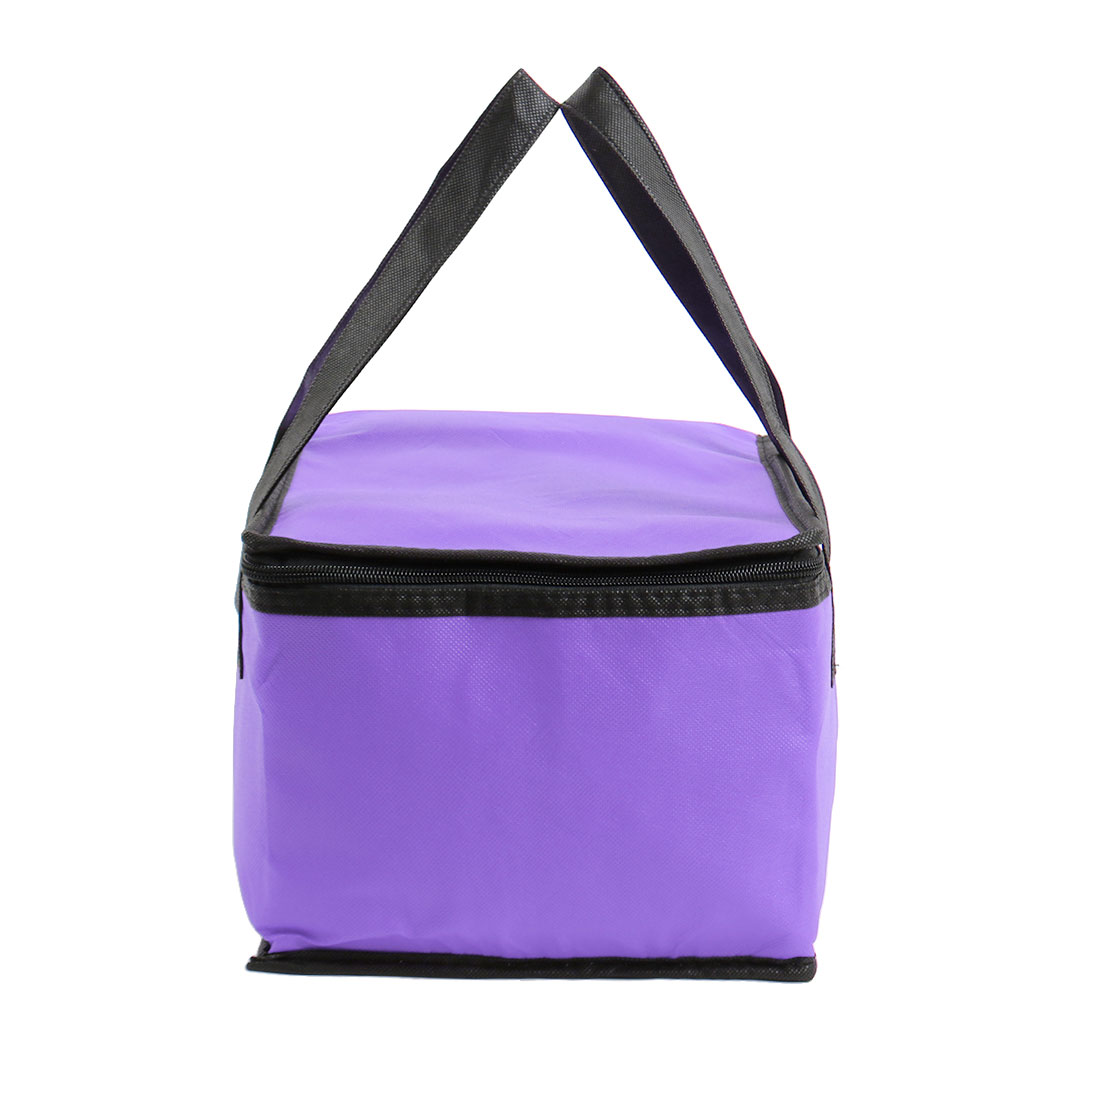 Unique Bargains Zipper Insulated Thermal Cooler Picnic Lunch Box Bag Carry Tote Storage W Strap Purple